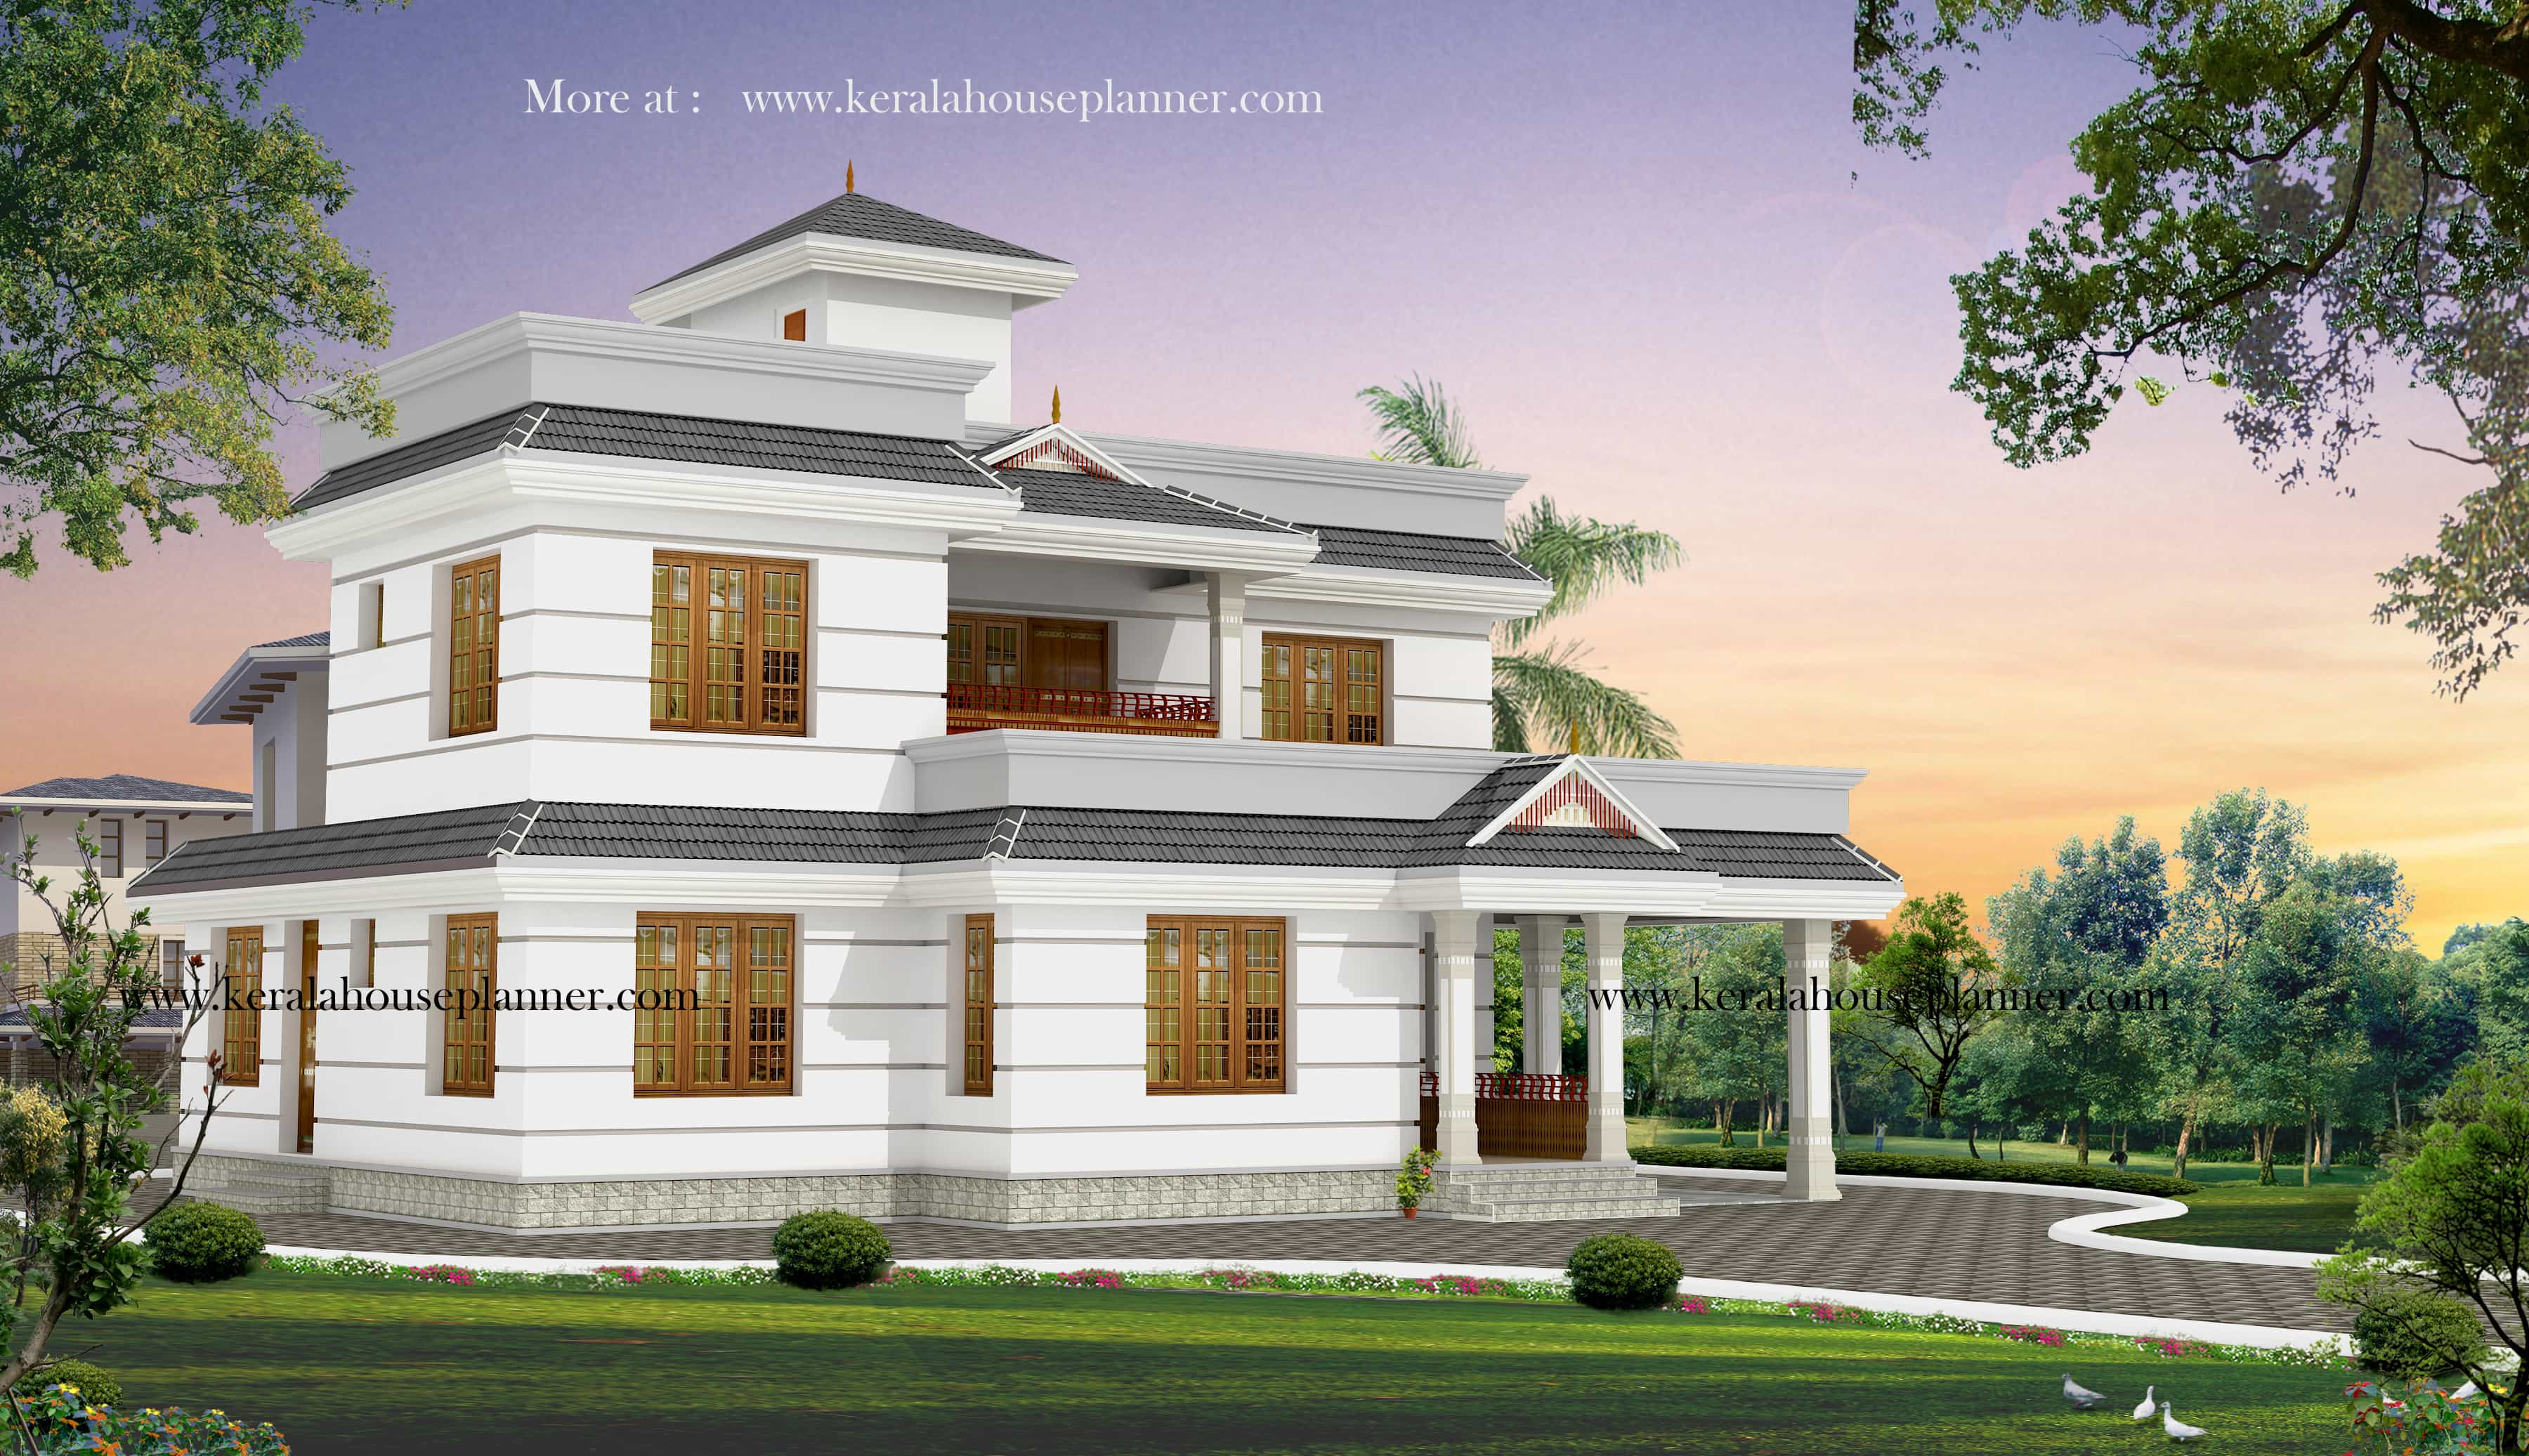 Two storey kerala house designs 2 18 keralahouseplanner for Latest house designs